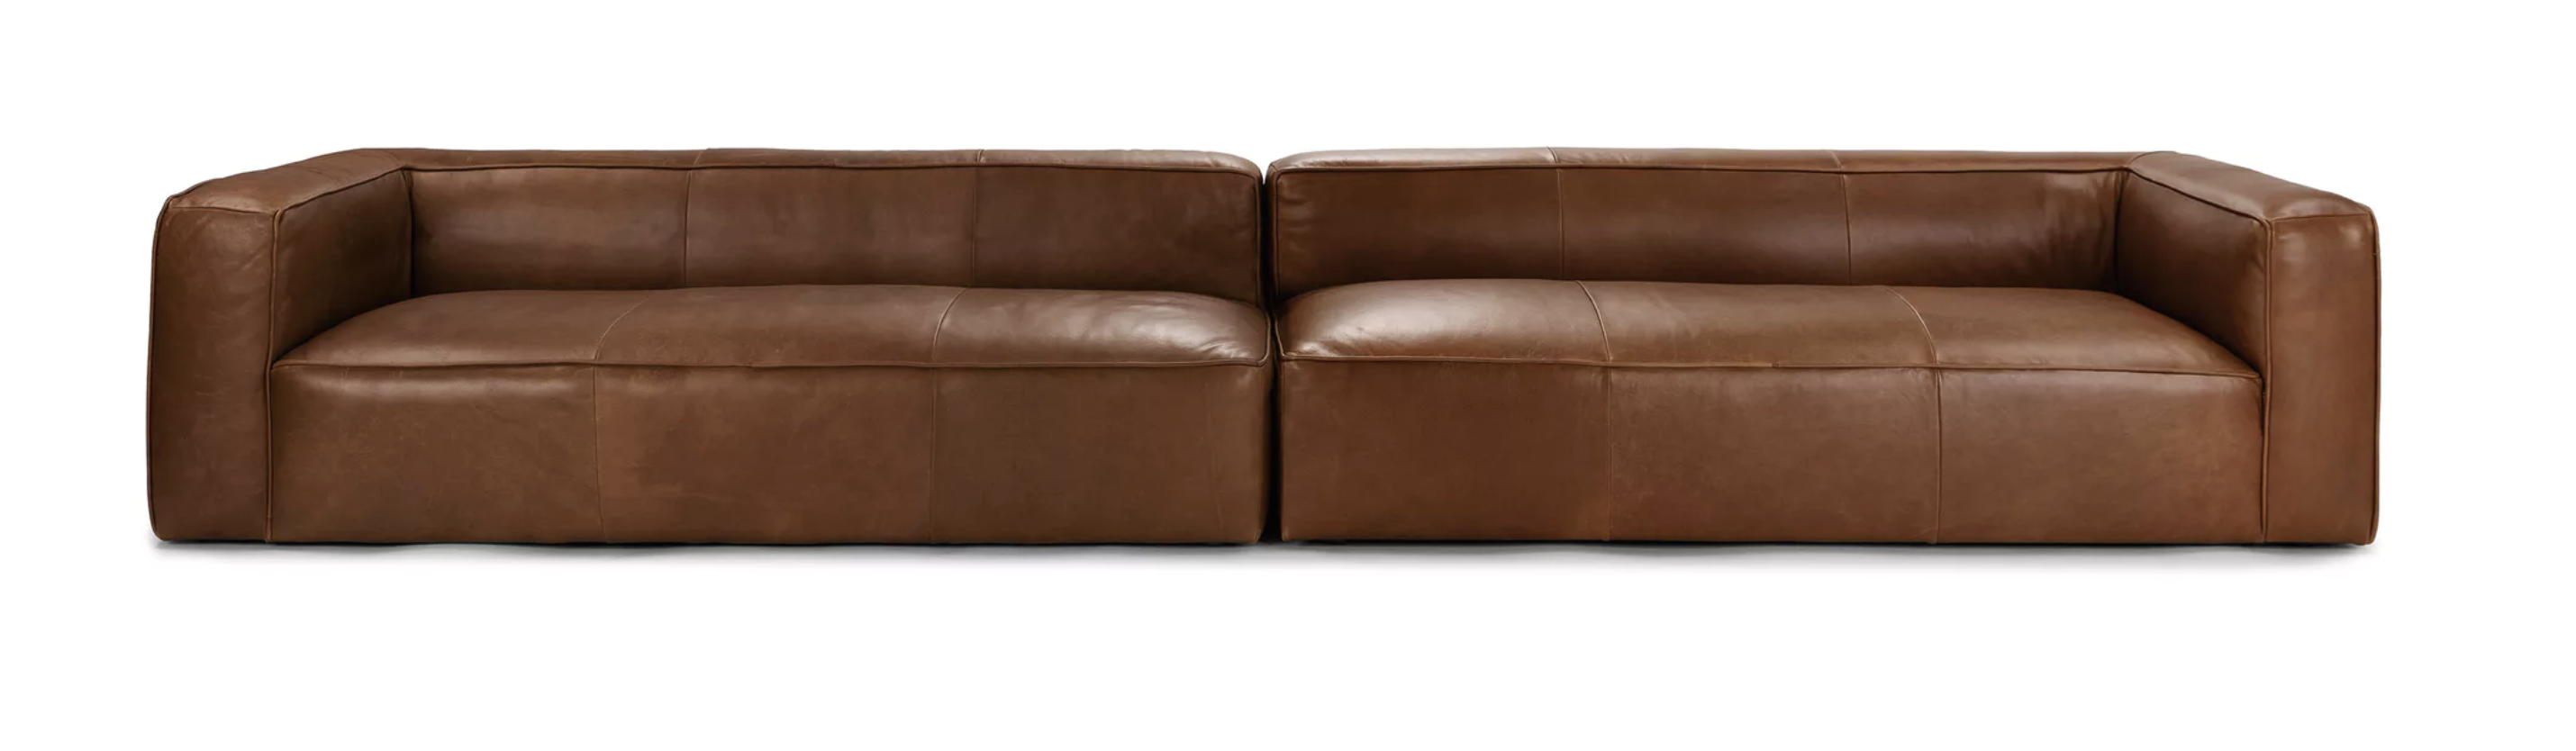 Best Mello Taos Brown 160 Sofa Long Couch Mid Century 400 x 300